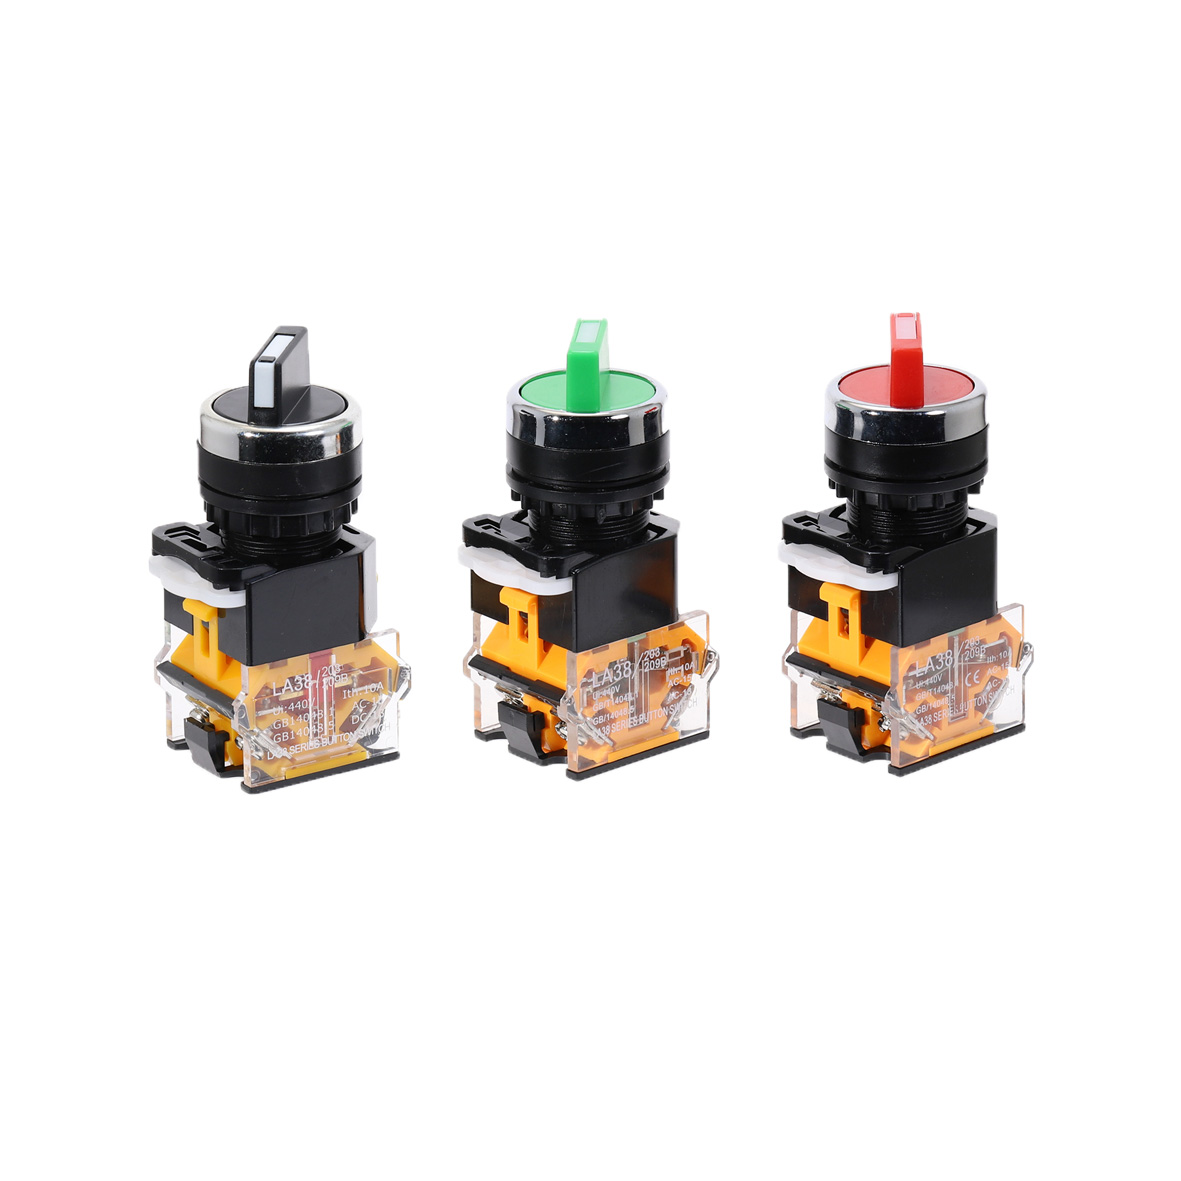 1pcs 22mm Self-lock Selector Switch 1NO1NC 2 Positions Rotary Switches DPST 4 screws 10A400V Power Knob Switch ON/OFF